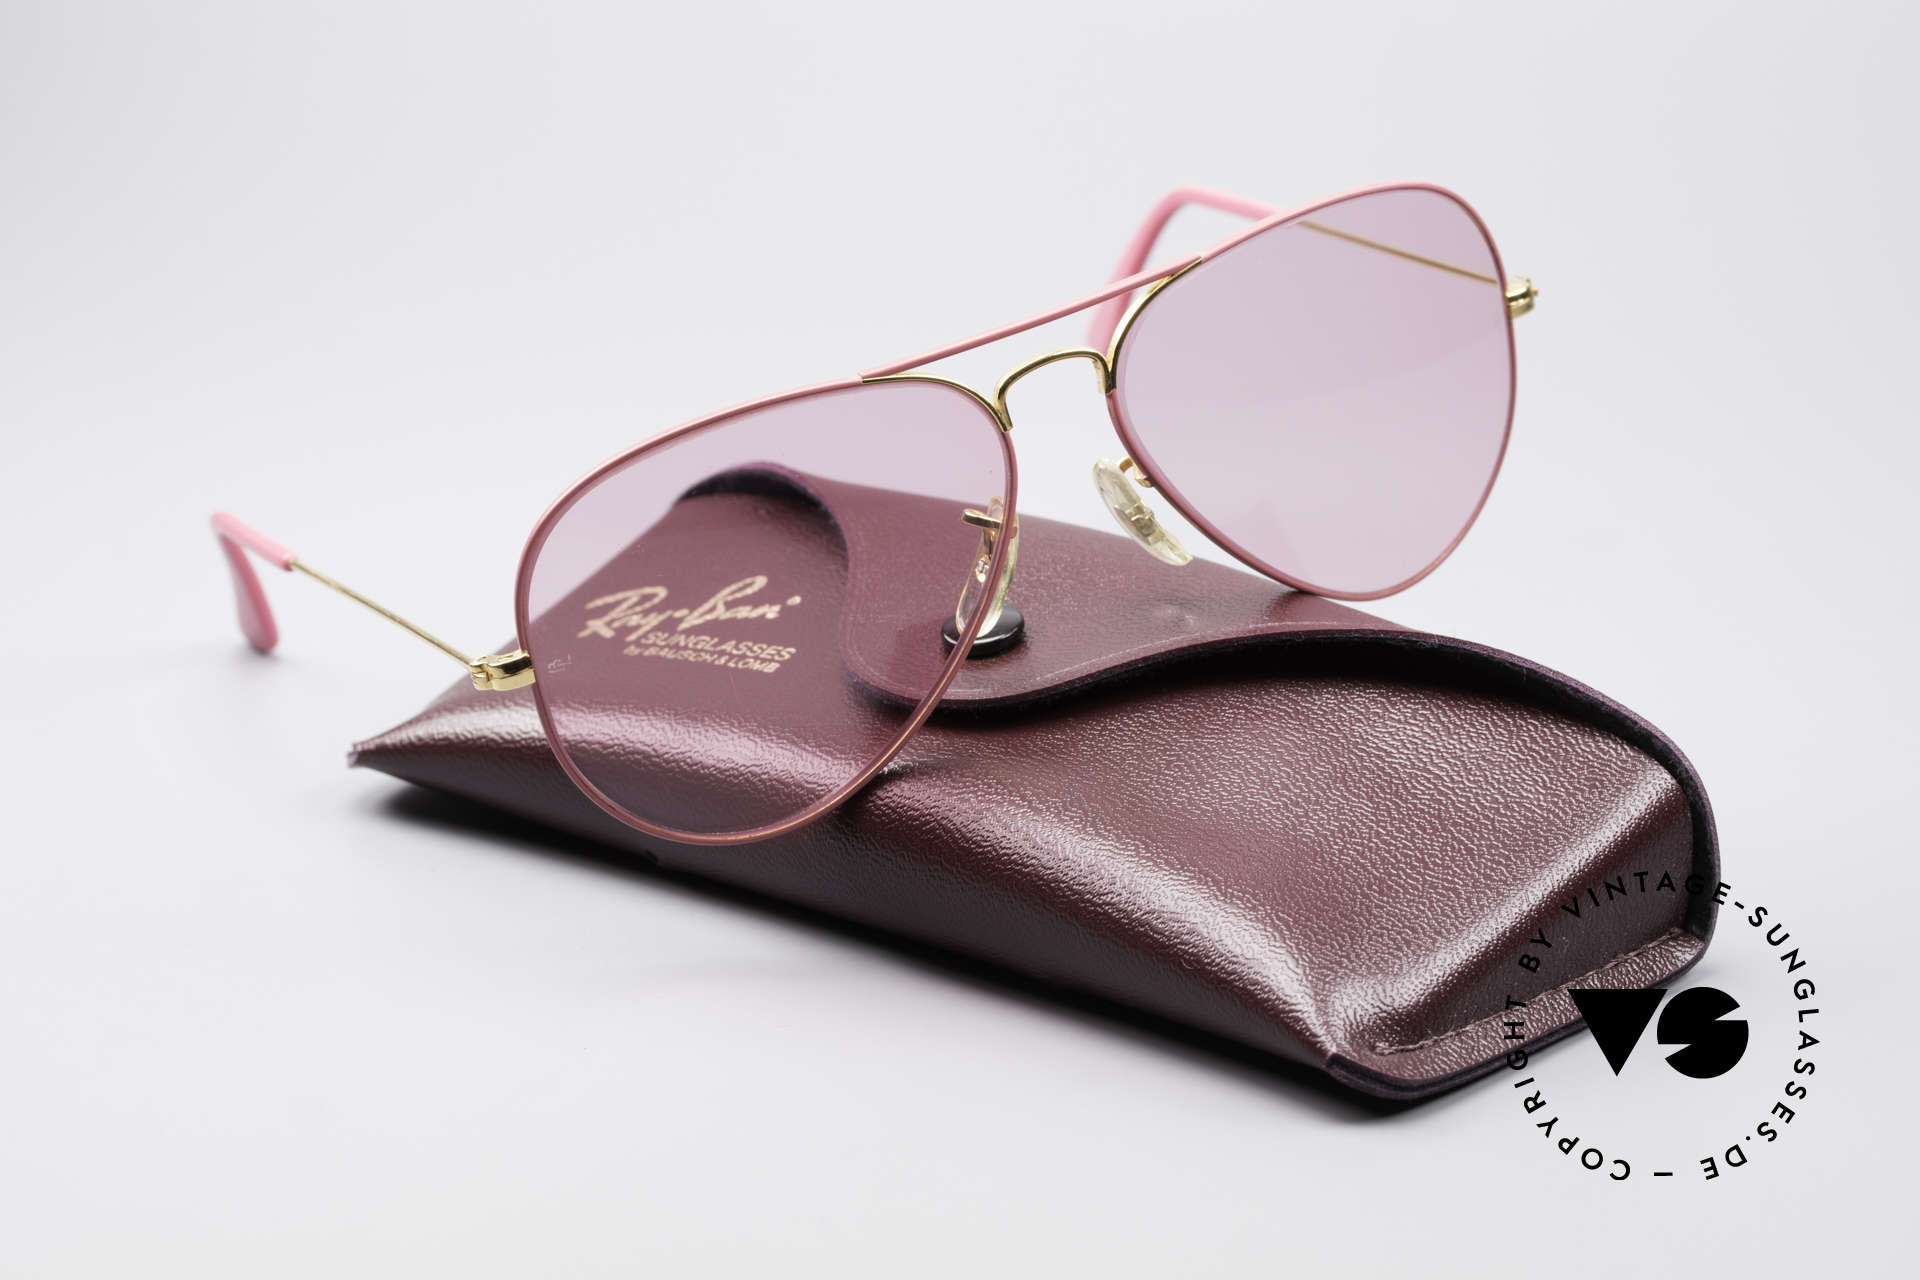 Ray Ban Large Metal Pink Ladies Sunglasses, reduced to 299€ (frame finish has two tiny chips), Made for Men